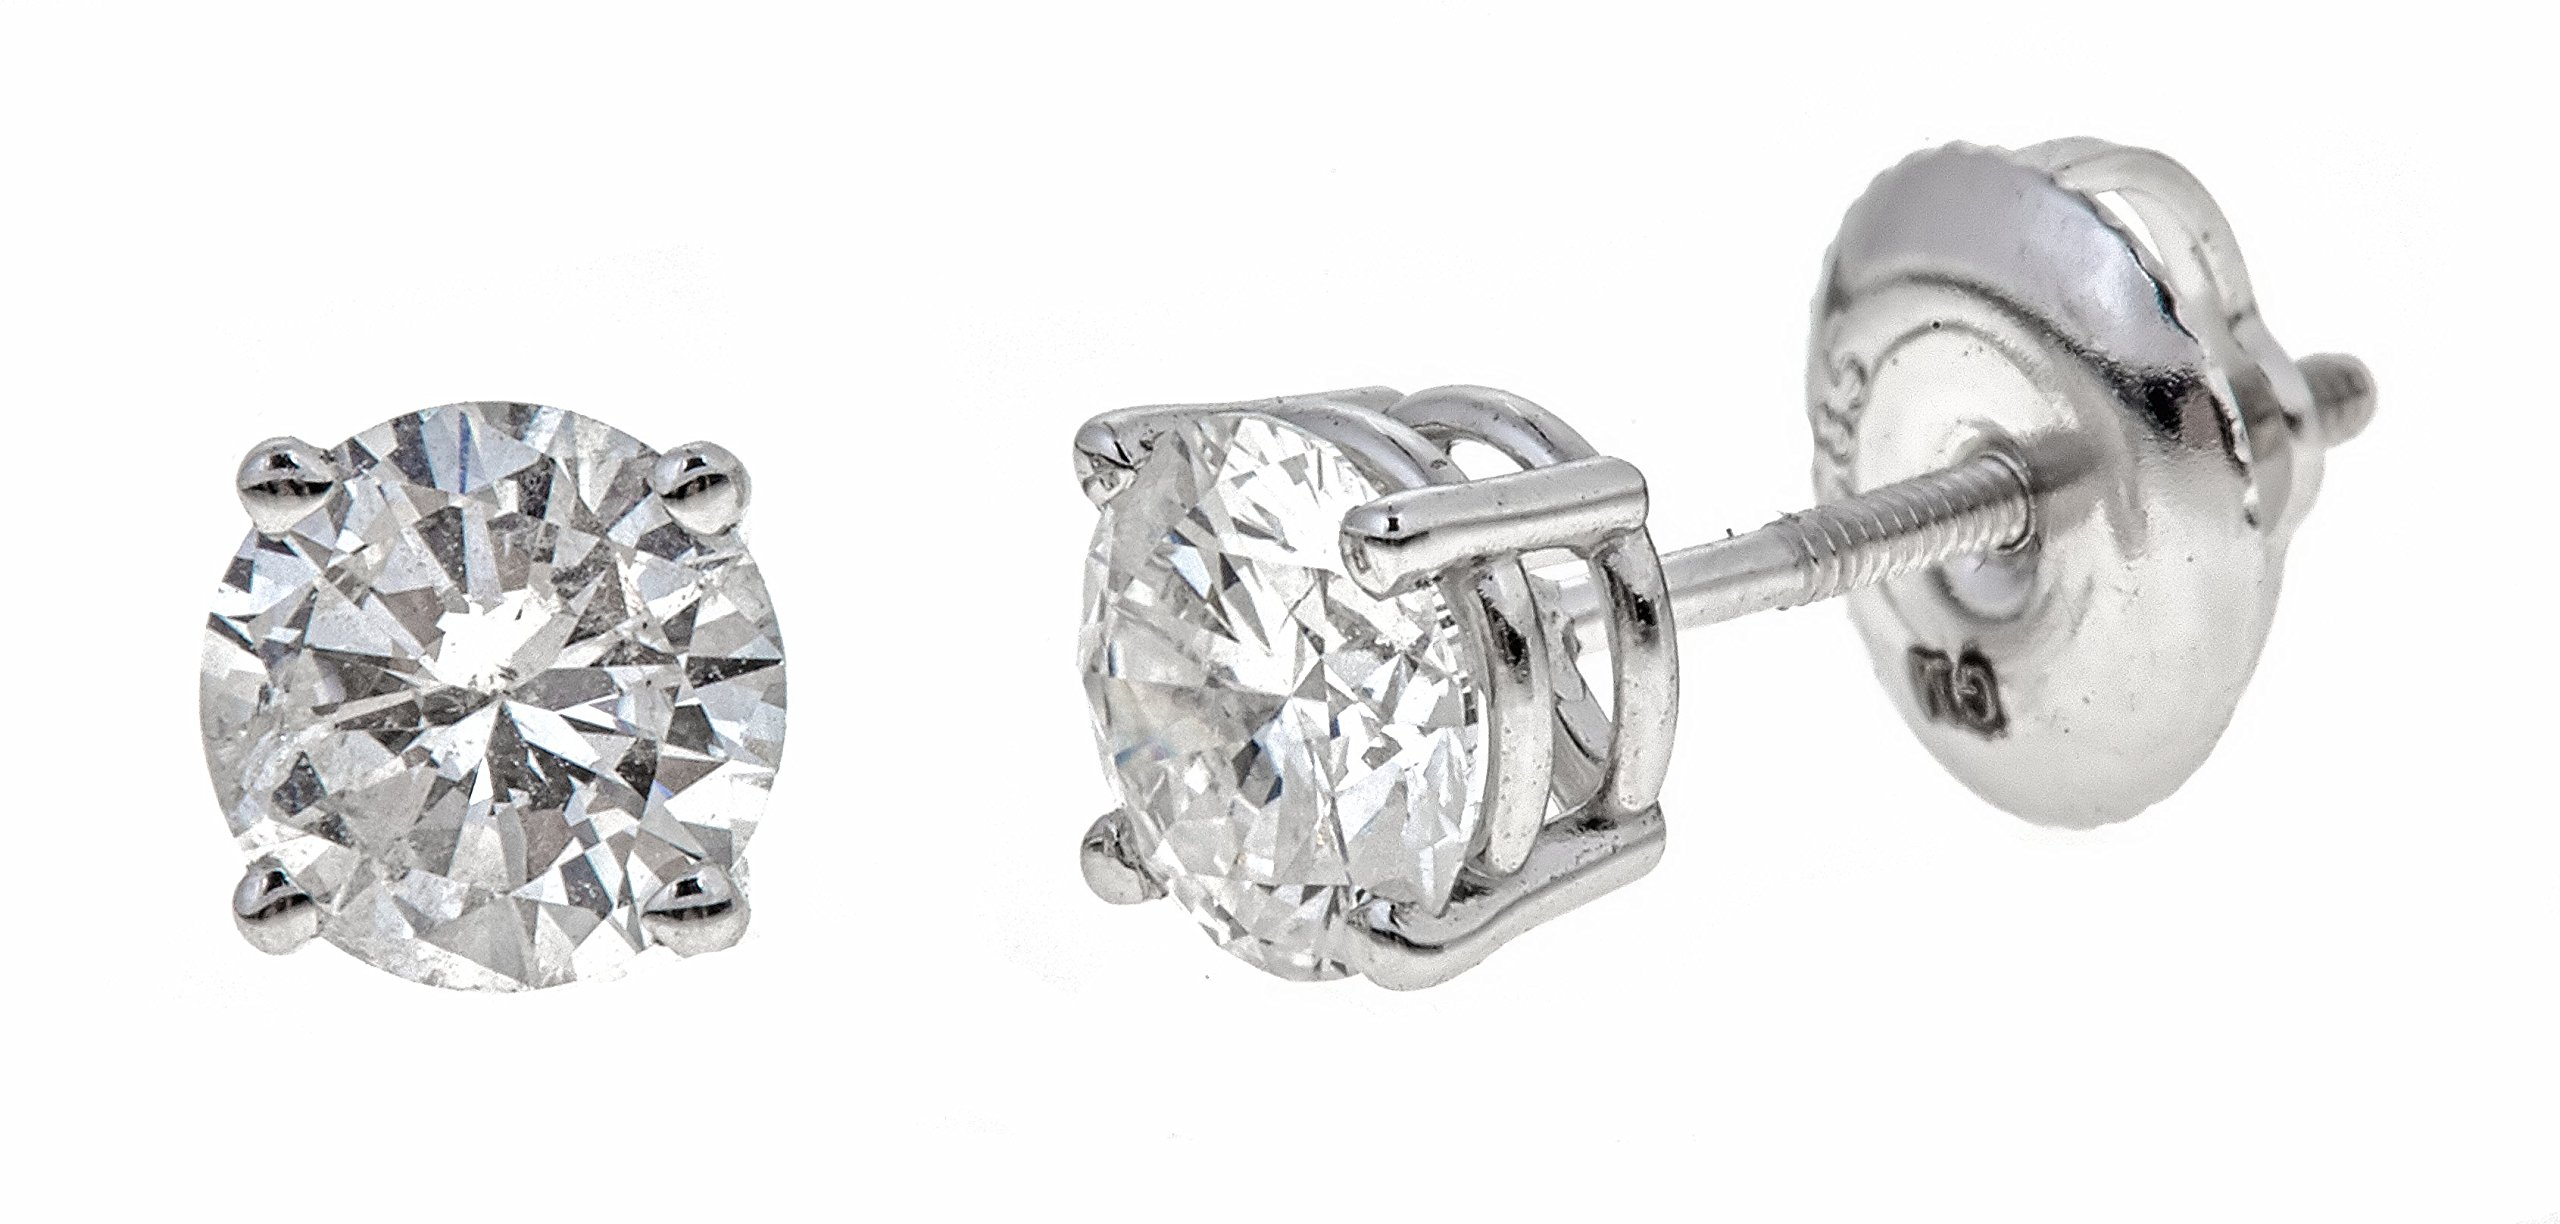 AGS Certified 14k White Gold Round-Cut Diamond Stud Earrings (1 1/2cttw, K-L Color, I2 Clarity)